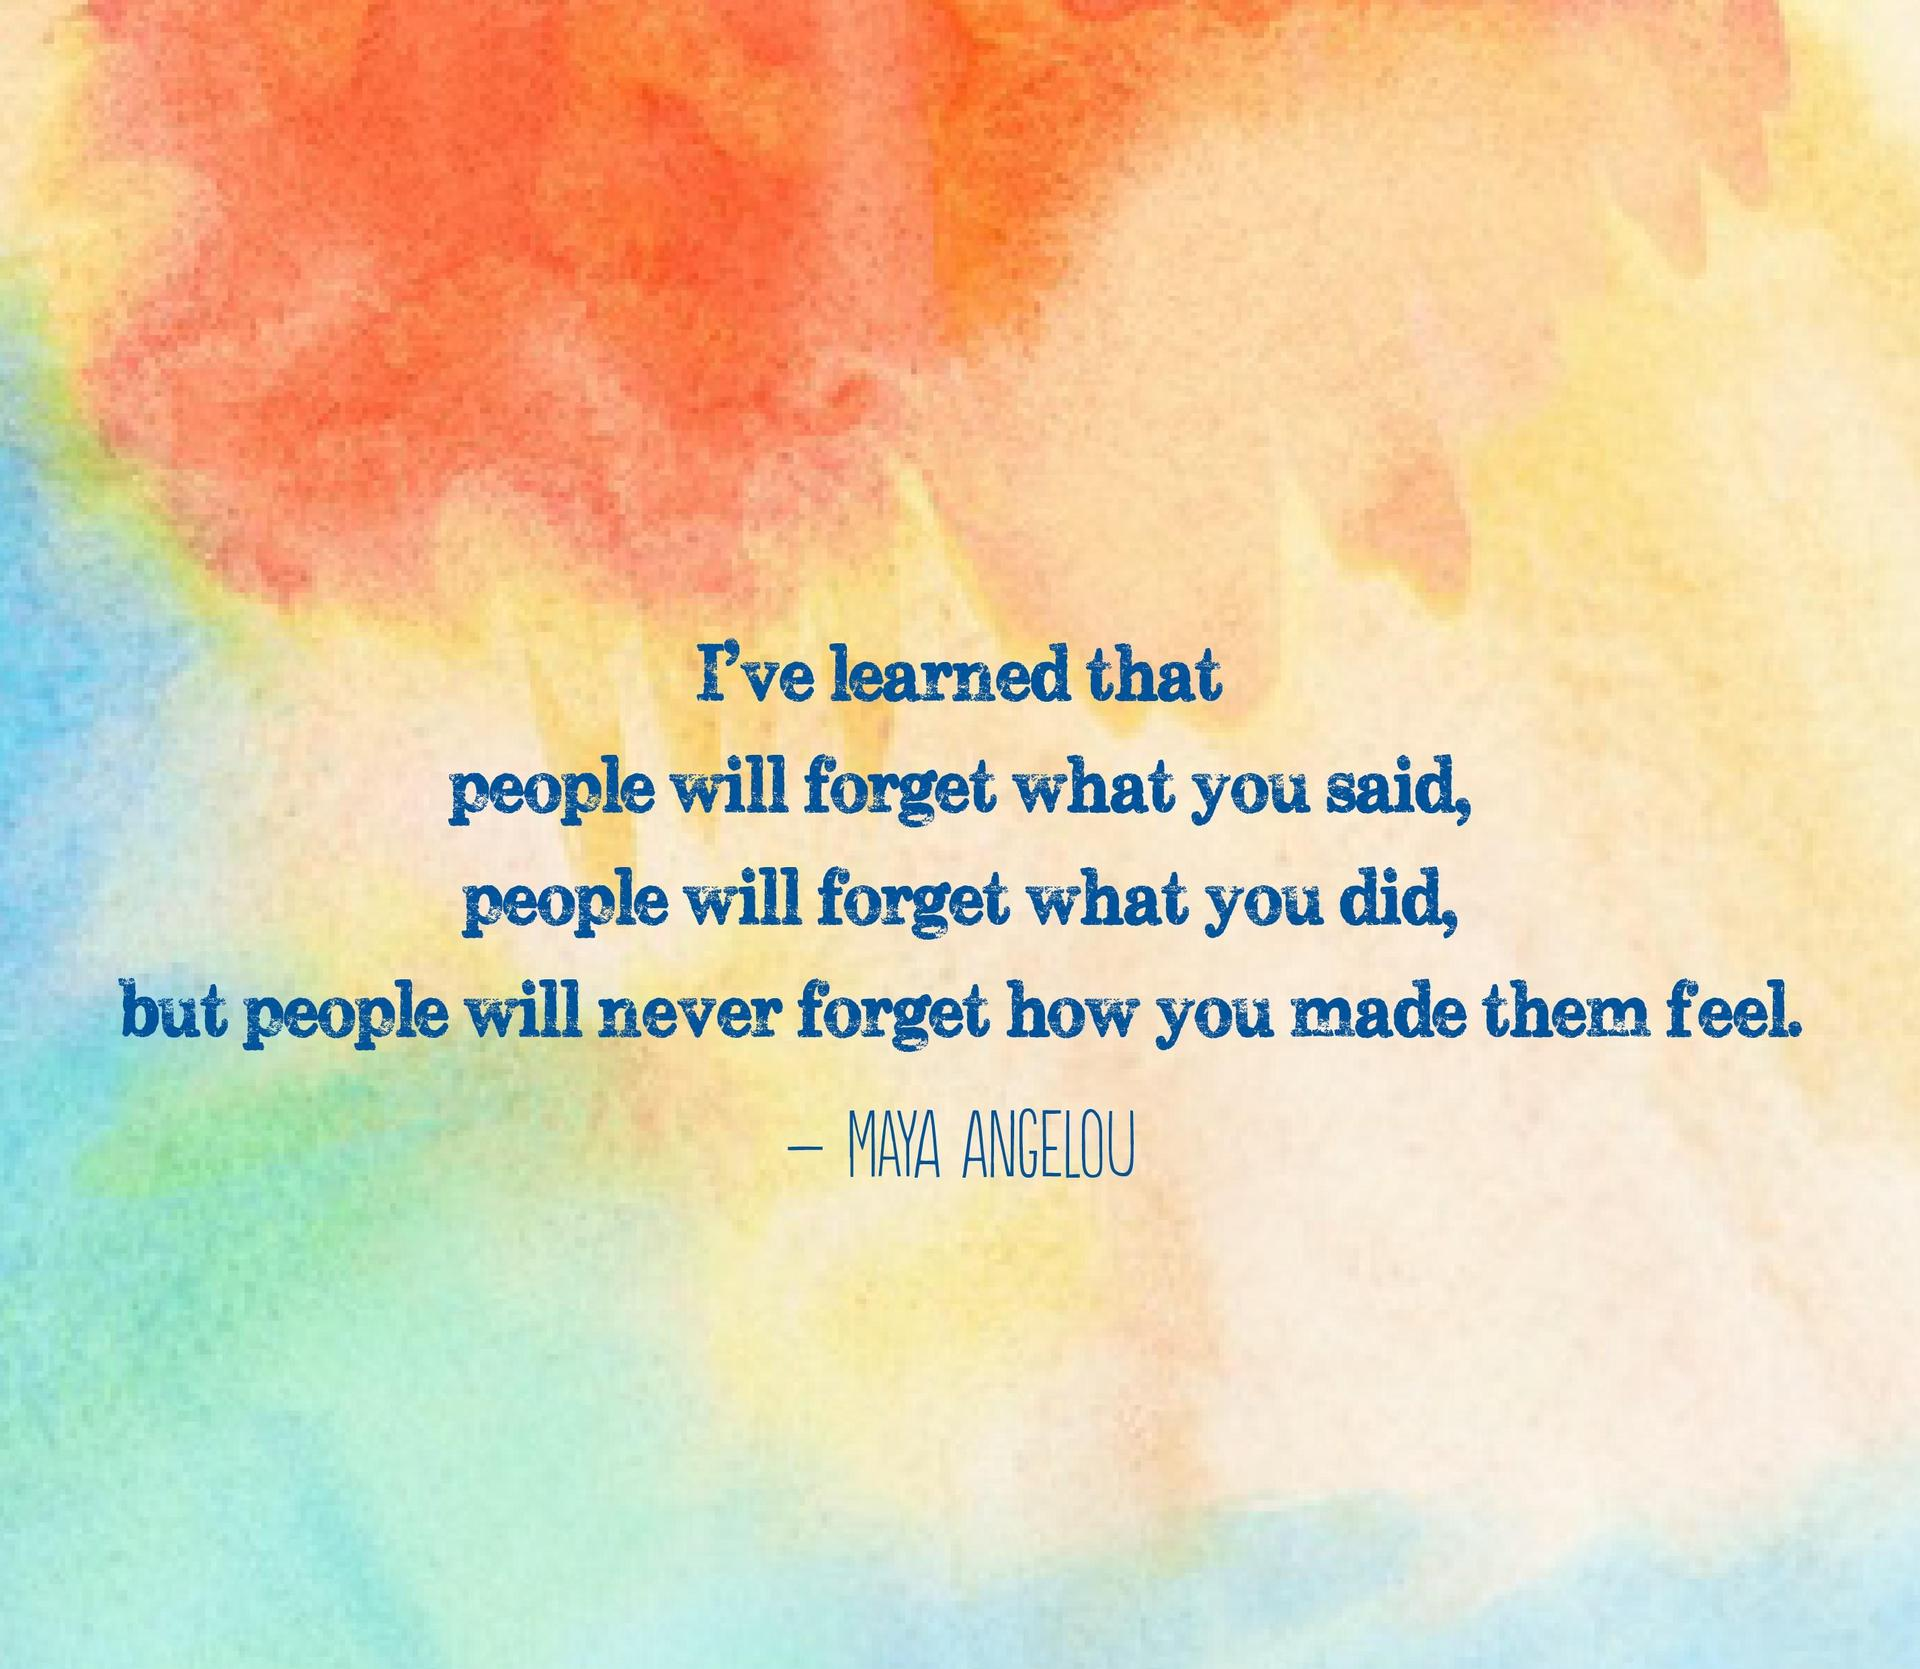 people might forget what you said and they may for do but they will never forget how you made them feel!